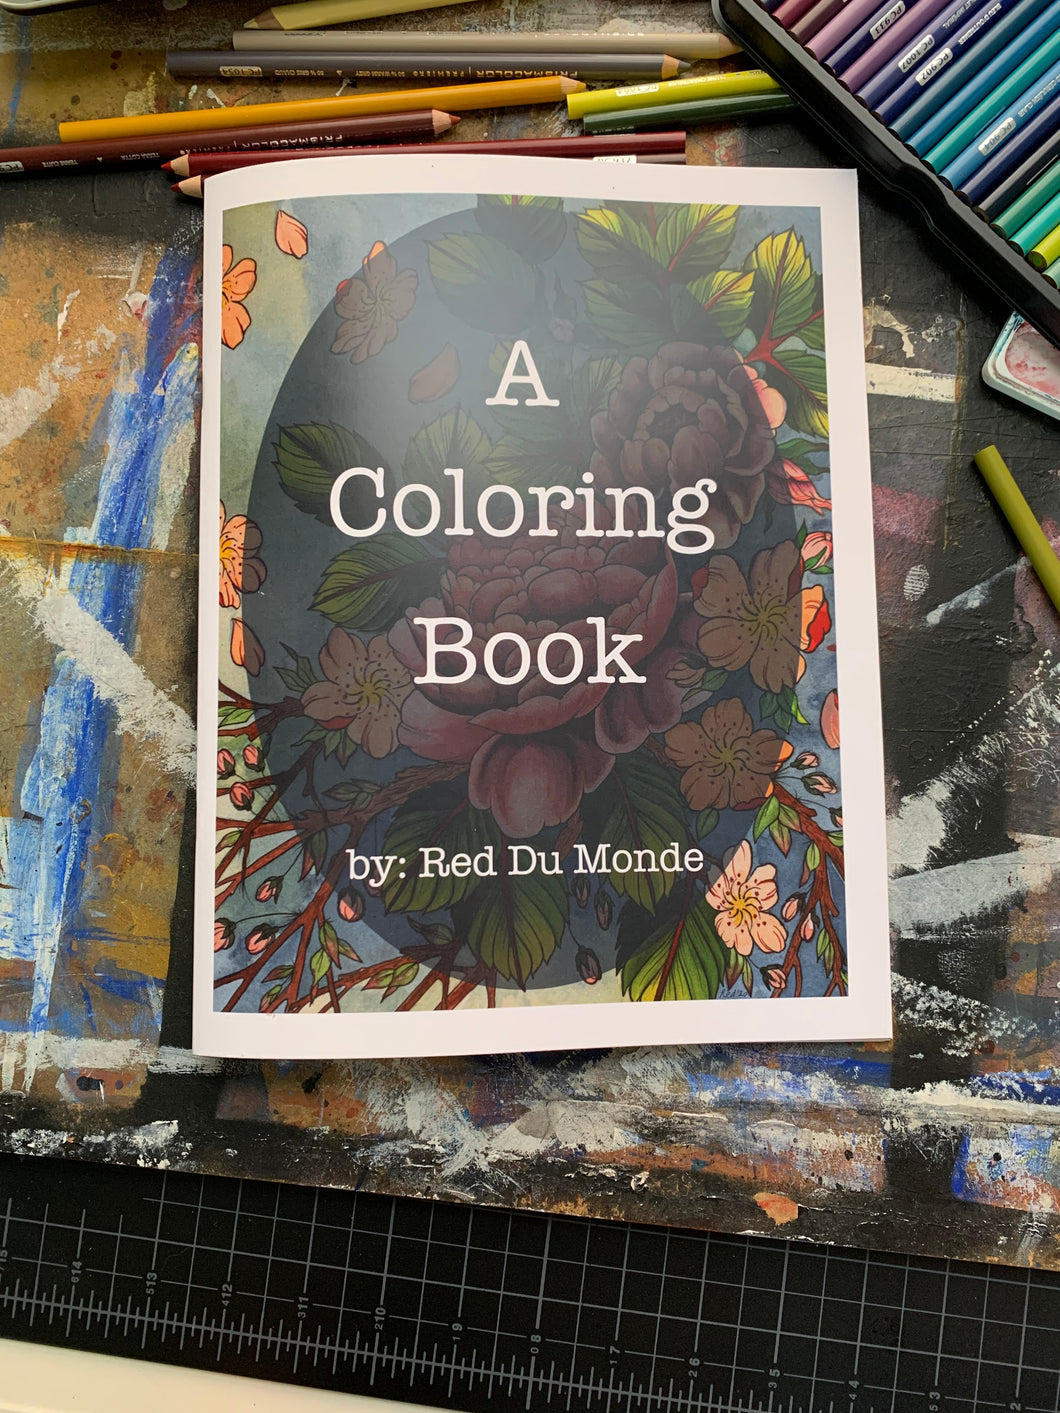 A Coloring Book by Red Du Monde